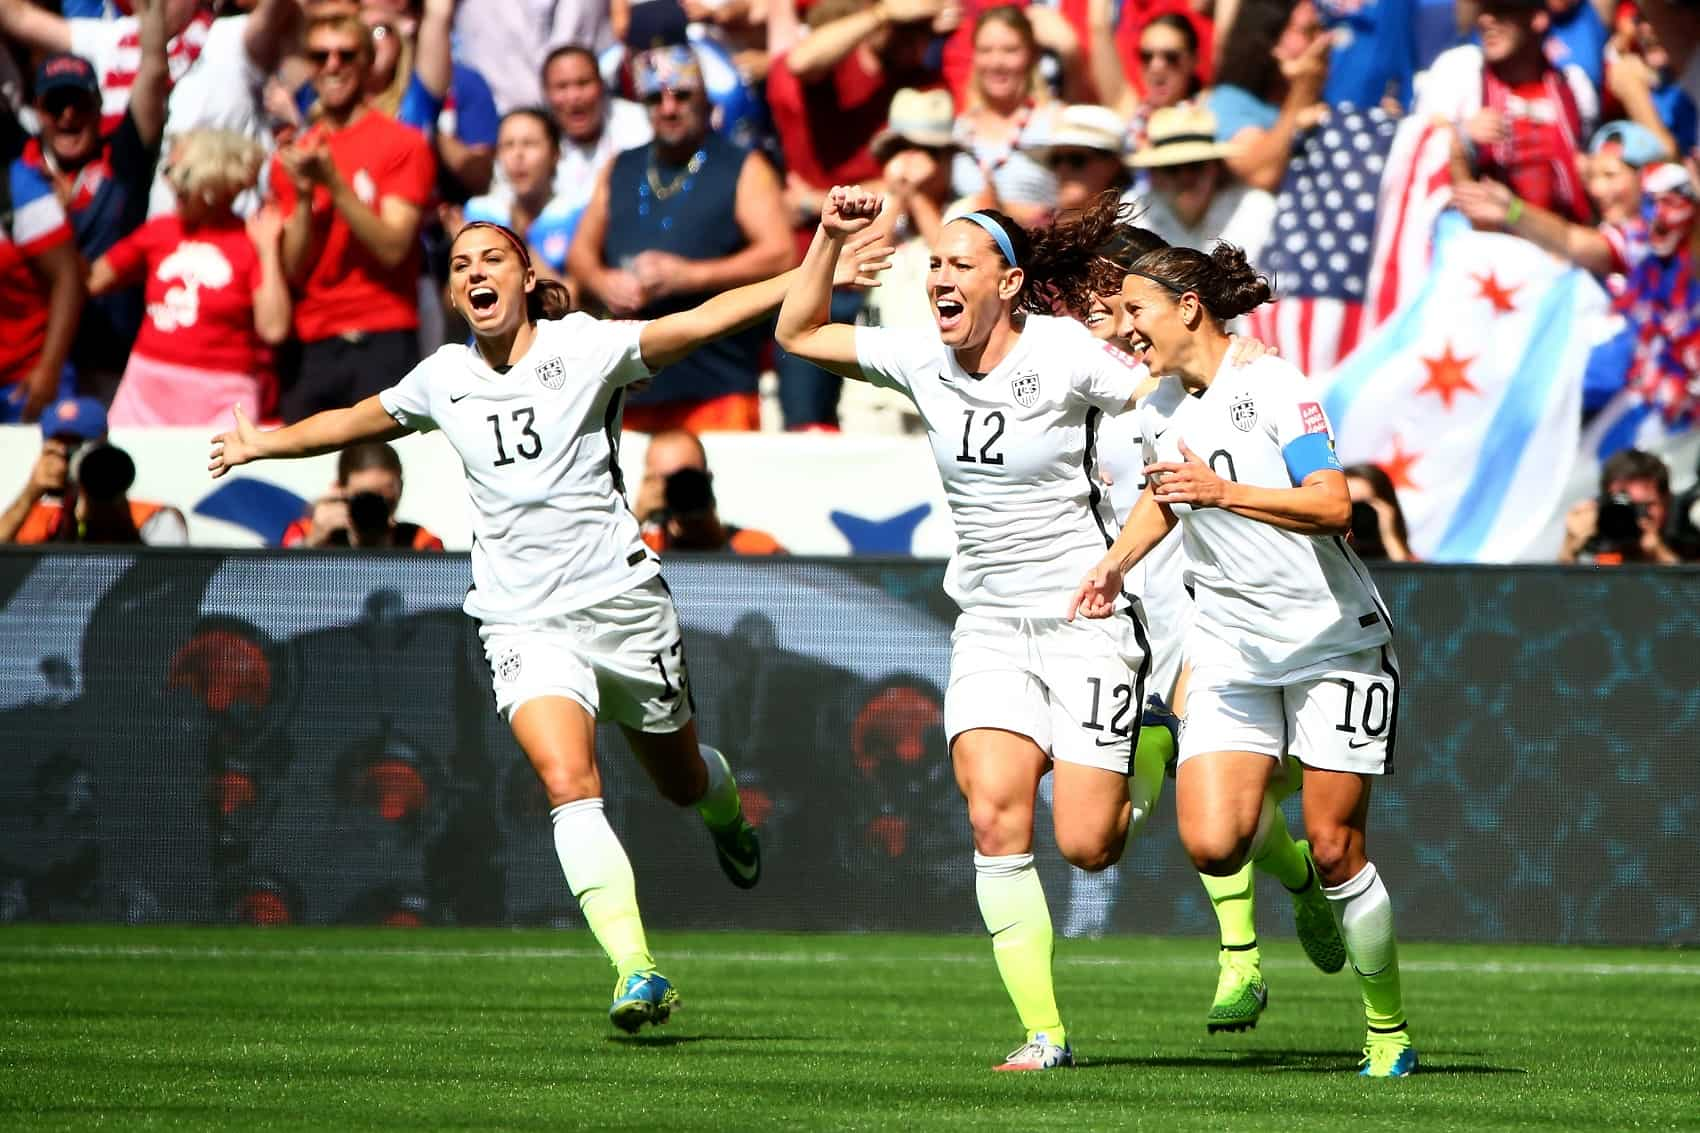 Lauren Holiday #12 and Carli Lloyd #10 of the United States celebrate with teammates after Lloyd scores her second goal against Japan in the FIFA Women's World Cup Canada 2015 Final at BC Place Stadium on July 5, 2015 in Vancouver, Canada.